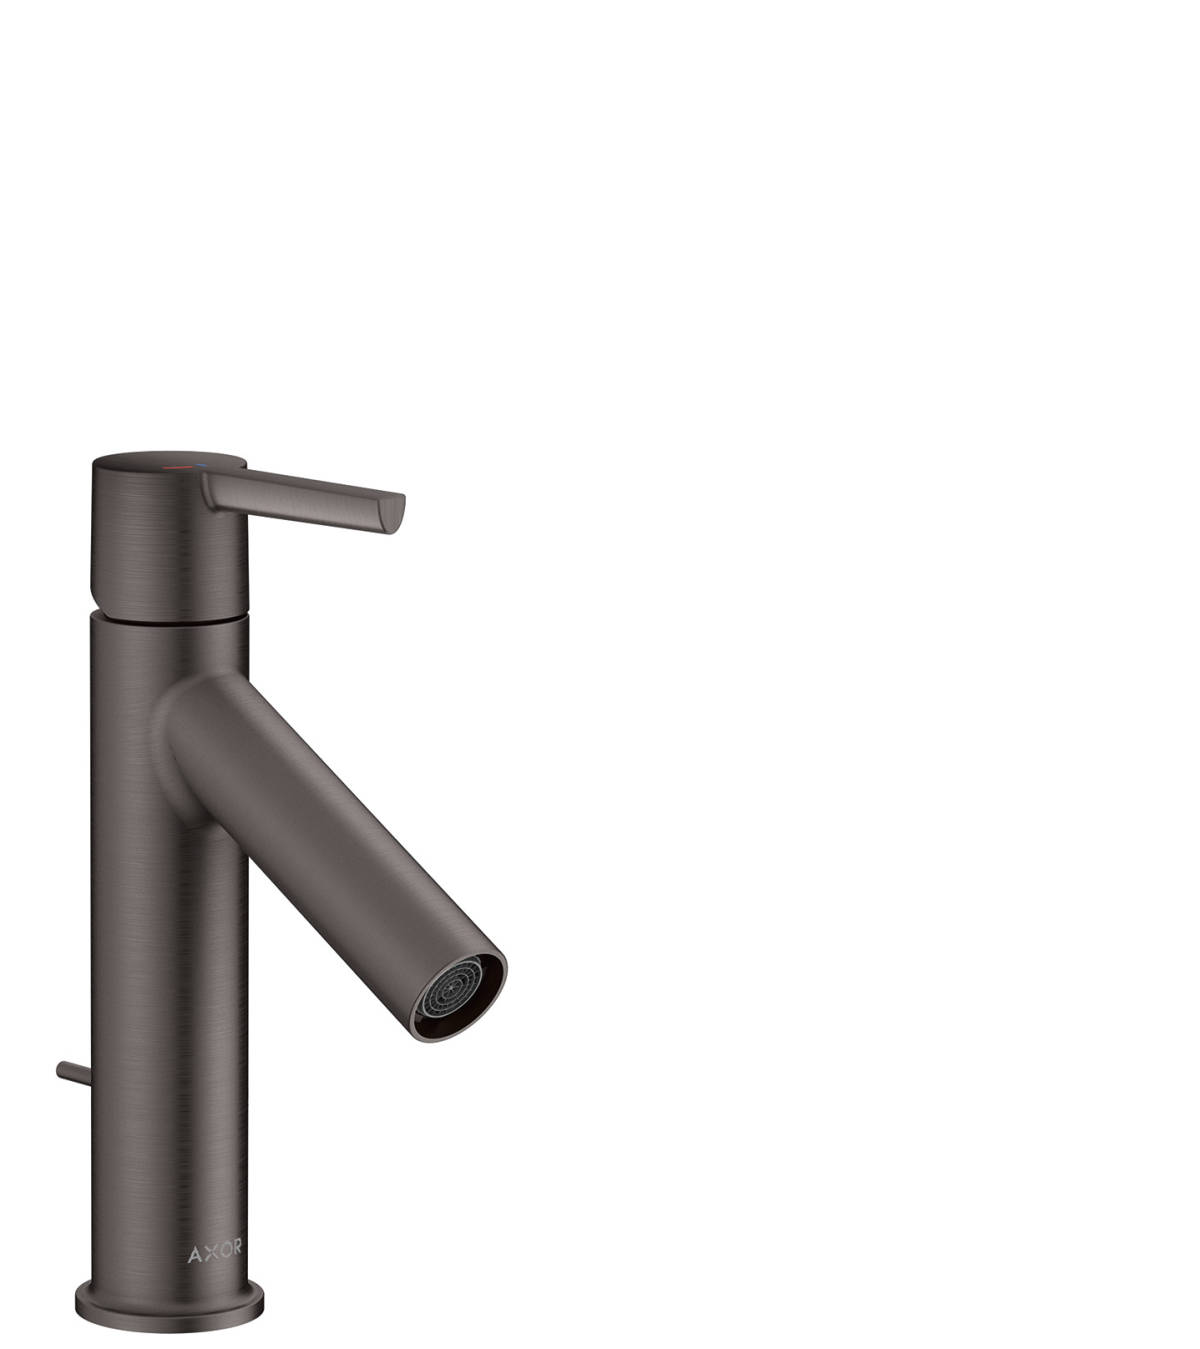 Single lever basin mixer 100 CoolStart with lever handle and pop-up waste set, Brushed Black Chrome, 10007340